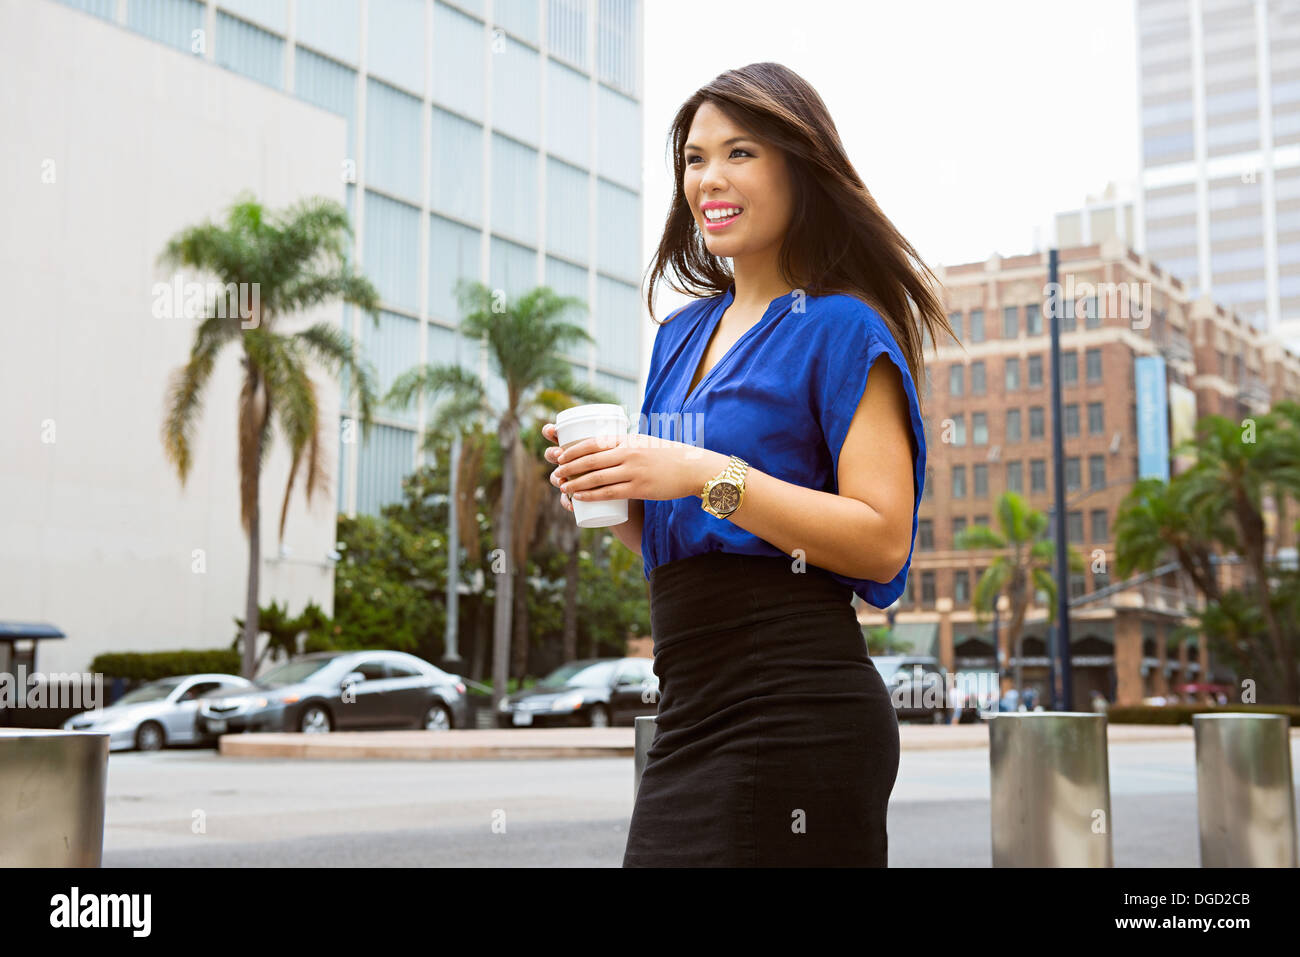 Young woman holding disposable cup in city, smiling - Stock Image